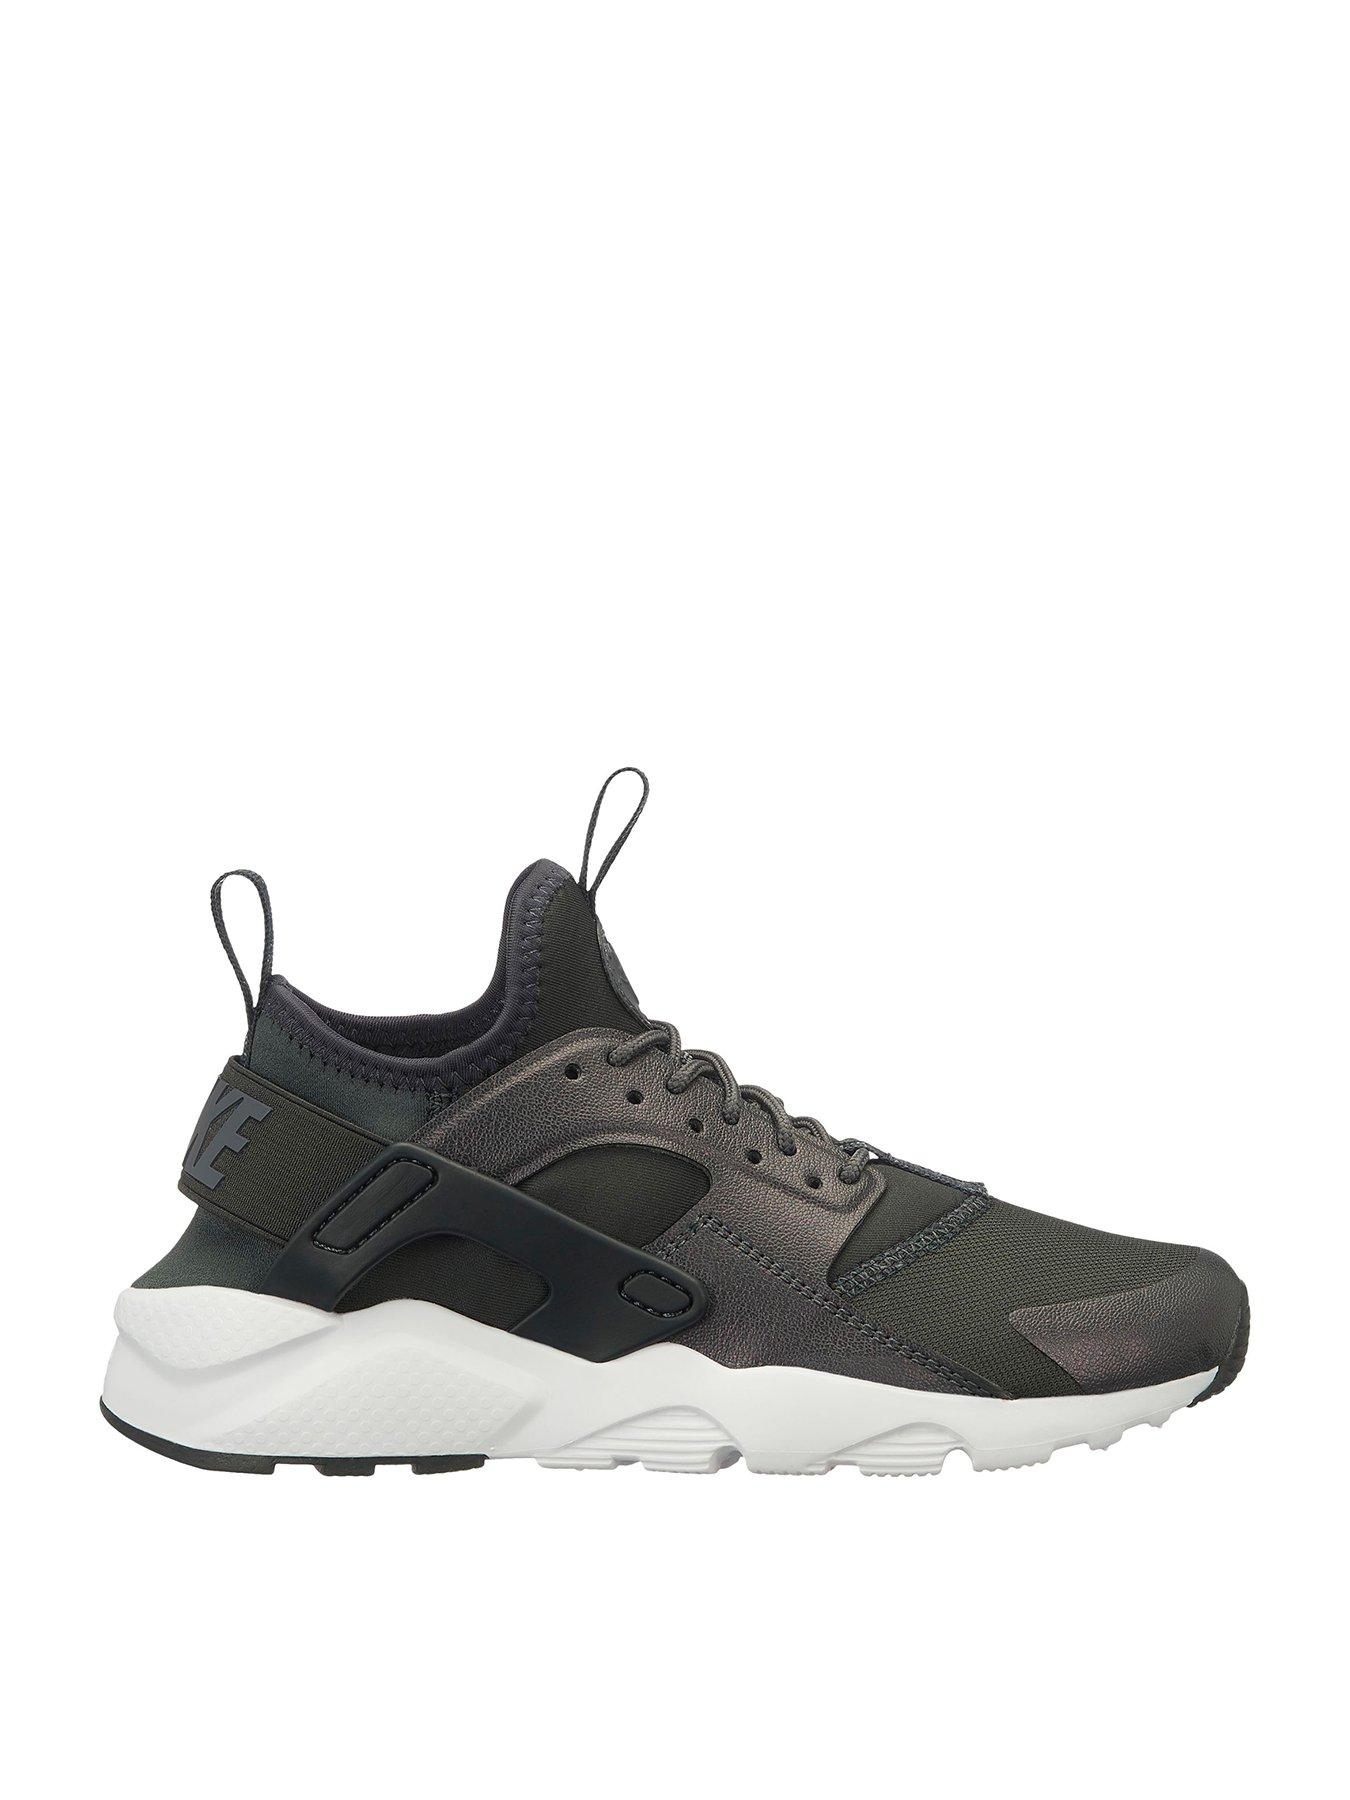 c959a3ebff3 ... inexpensive nike nike air huarache run ultra prm junior trainer 37867  4a824